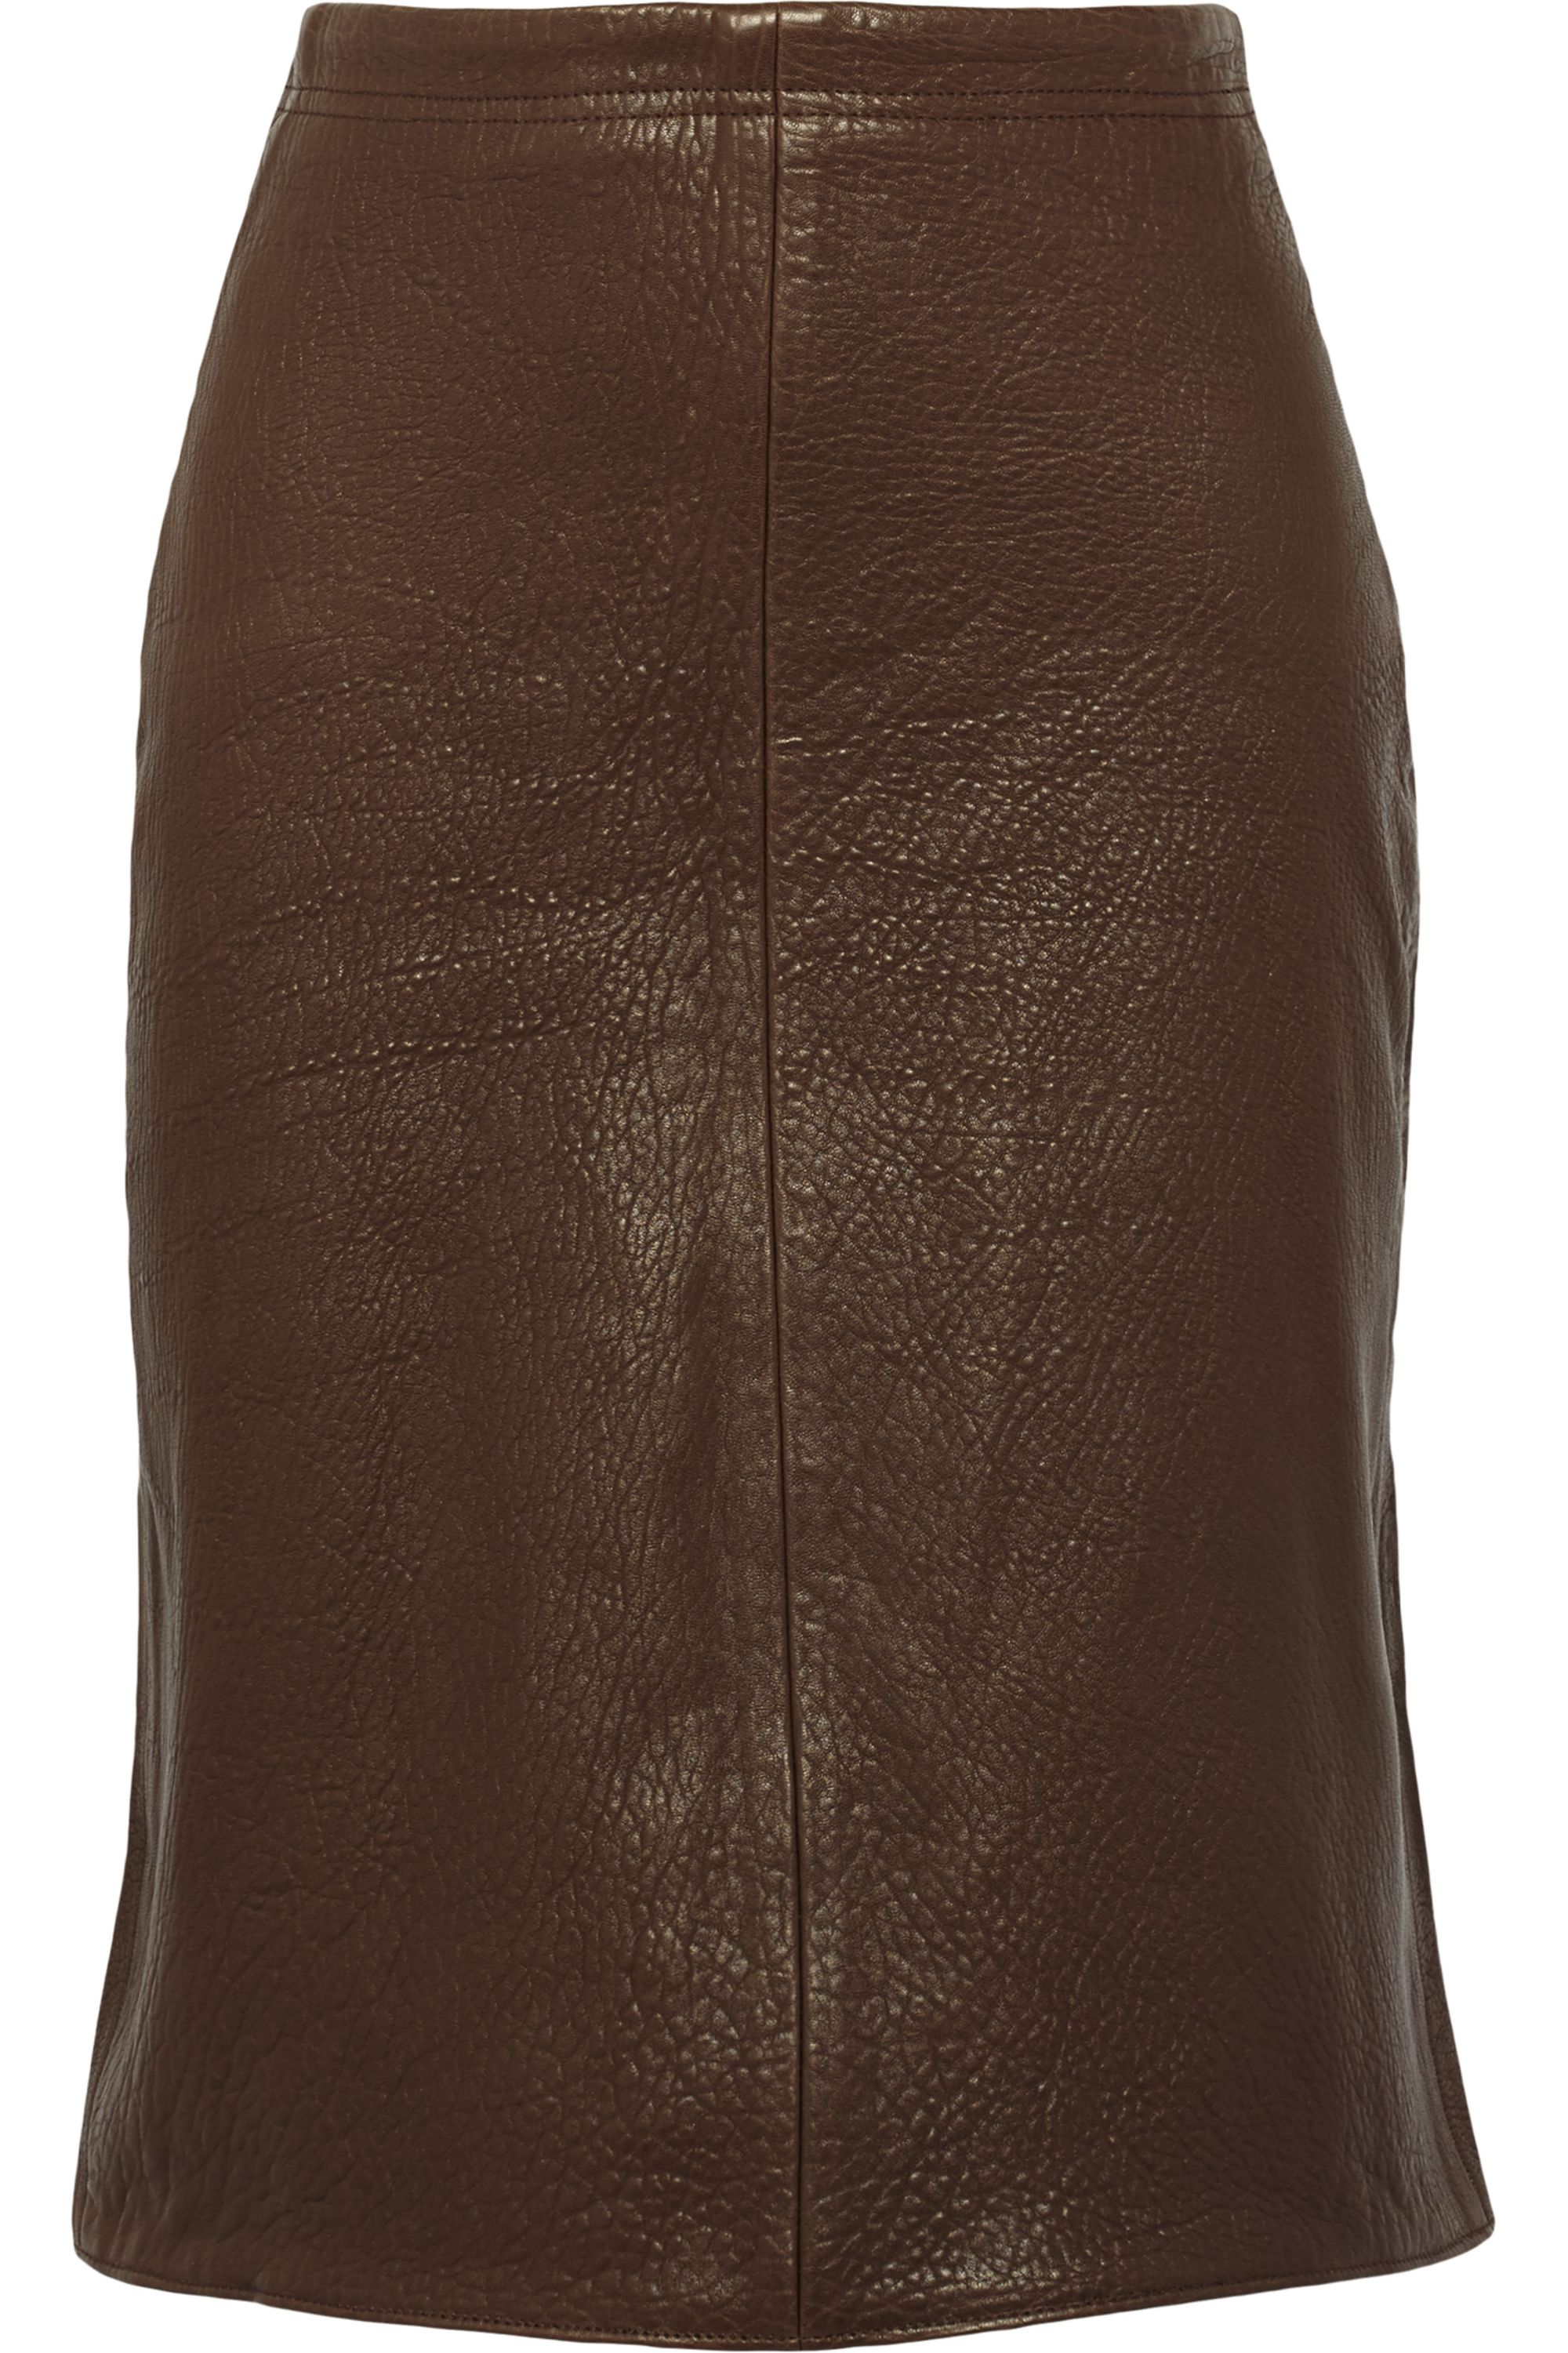 TITLE A Textured-leather skirt